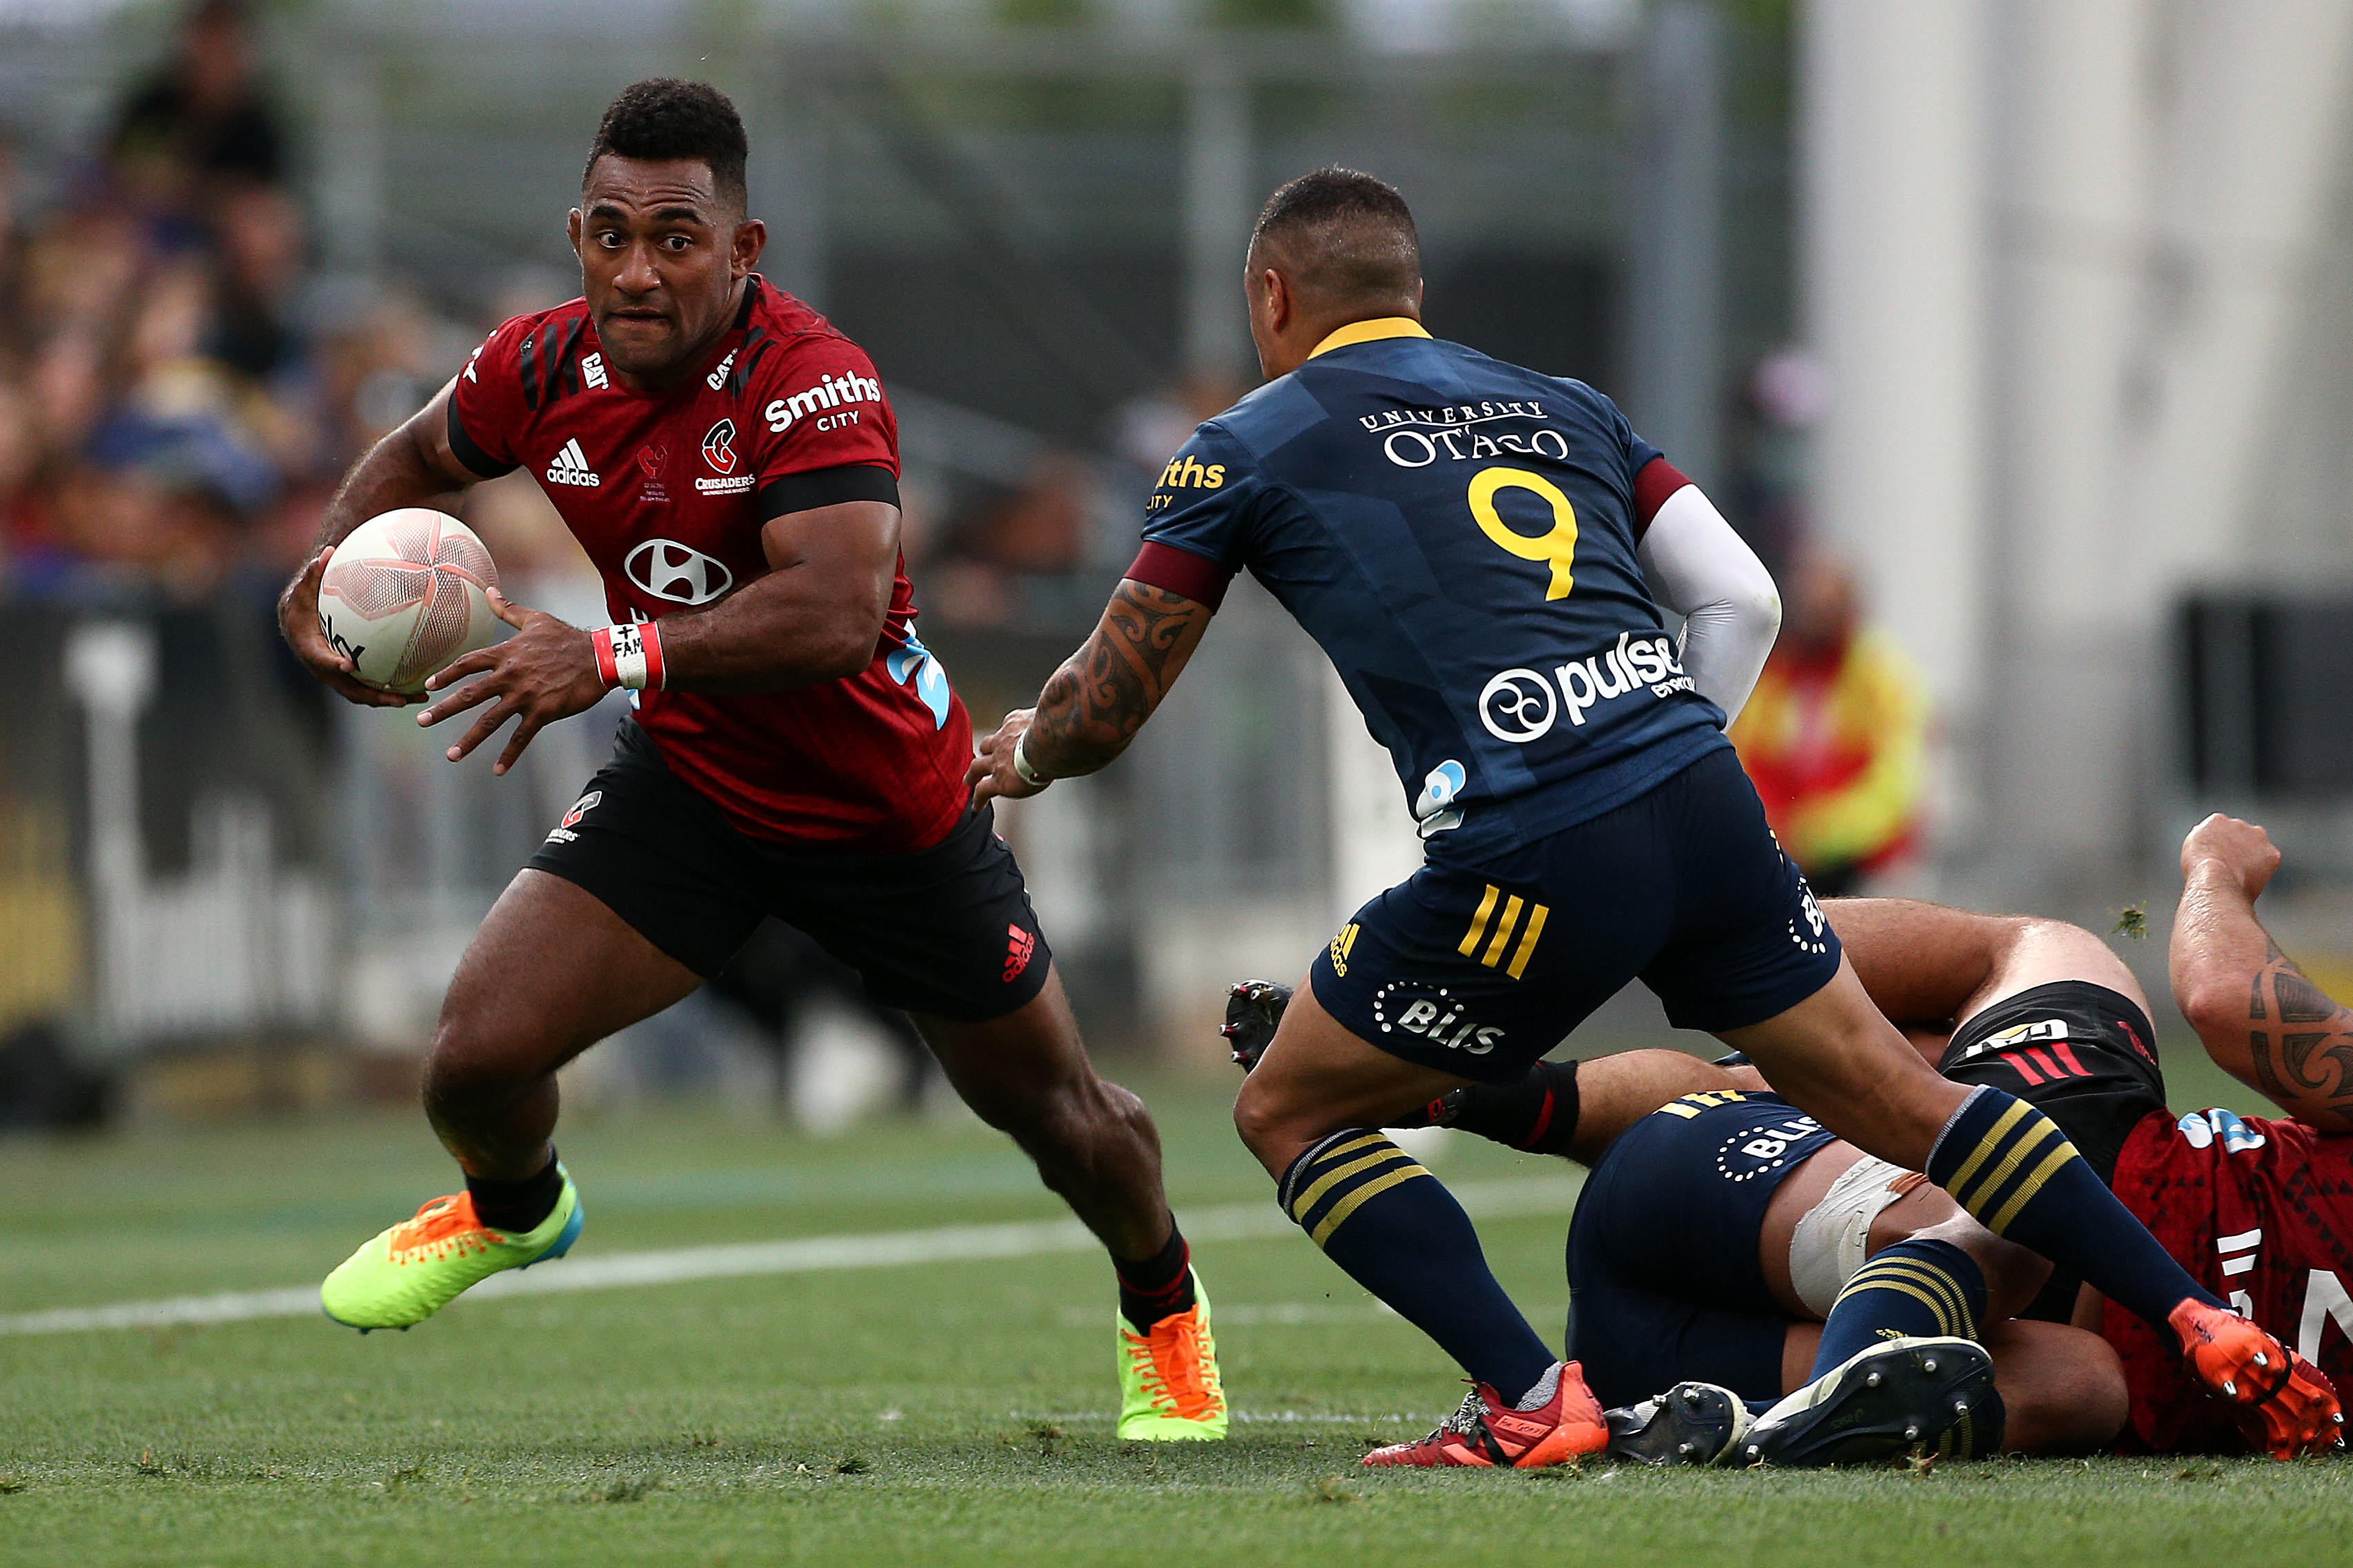 Watch: Sevu Reece kick creates incredible try for Crusaders - Rugby World